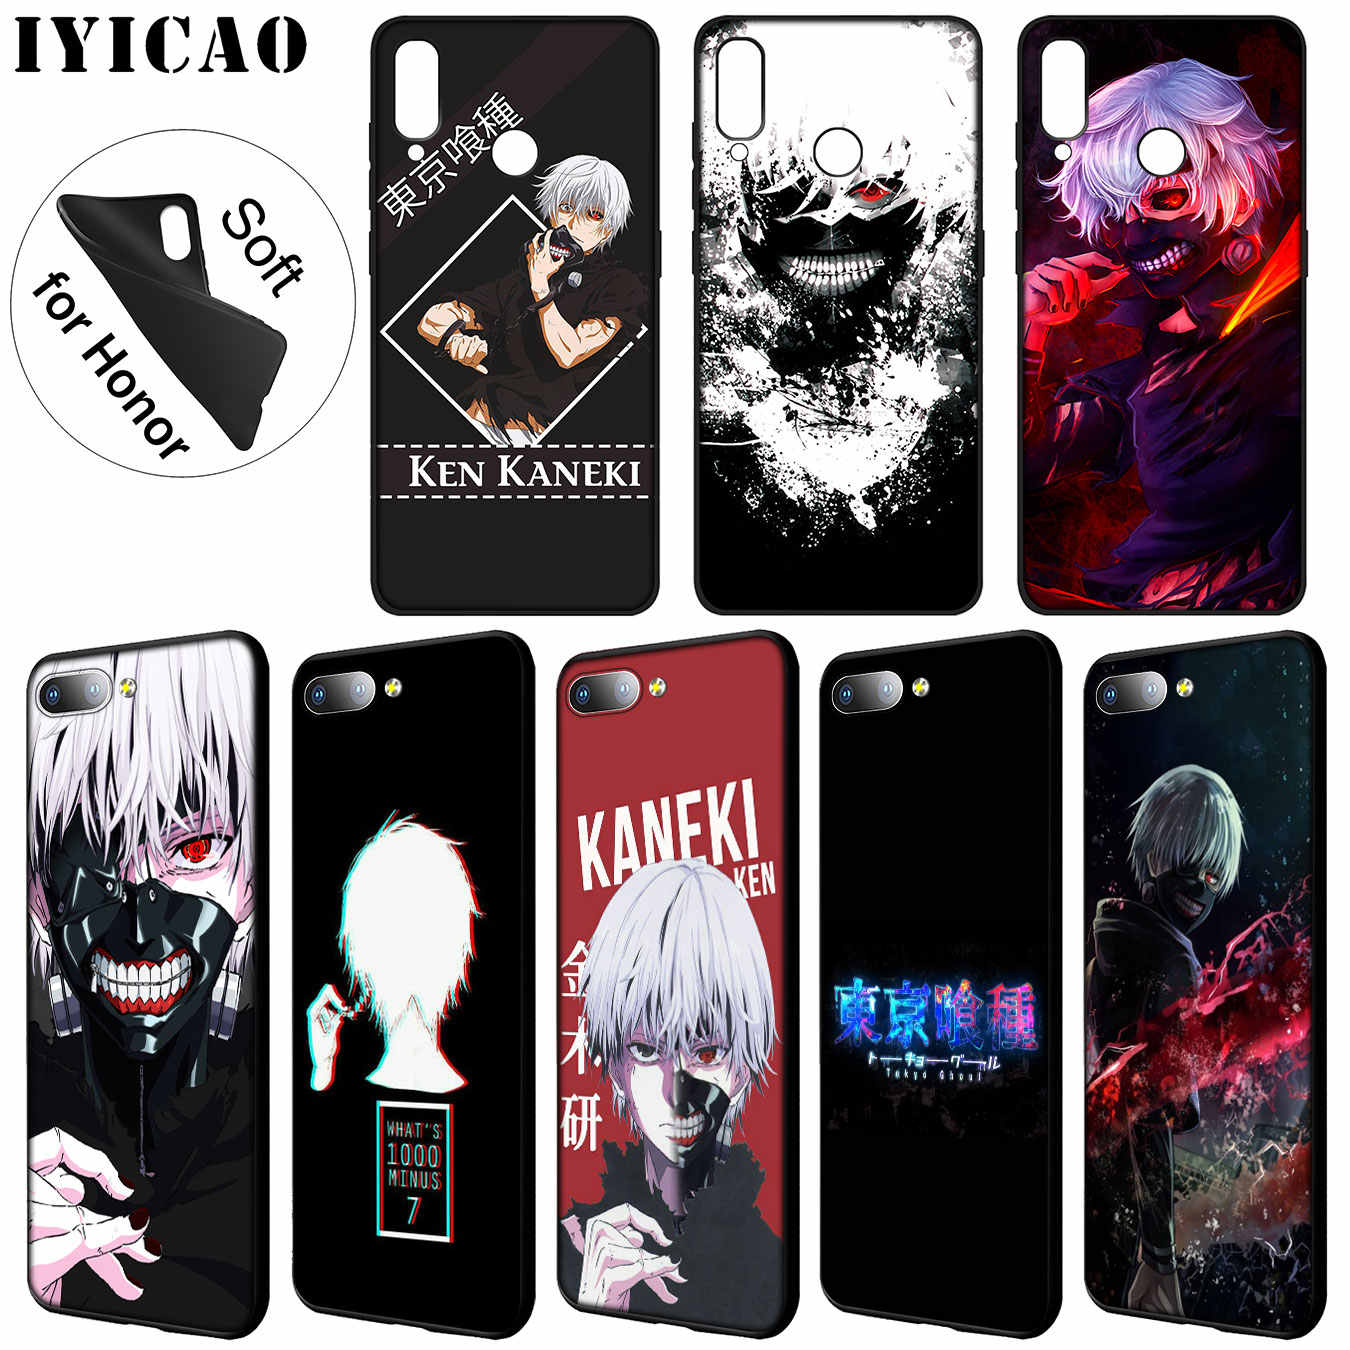 IYICAO Tokyo Ghouls Soft Silicone Phone Case for Huawei Y9 Y7 Y6 Prime 2019 Cover Honor 20 8C 8X 8 9 9X 10 Lite 7C 7X 7A Pro